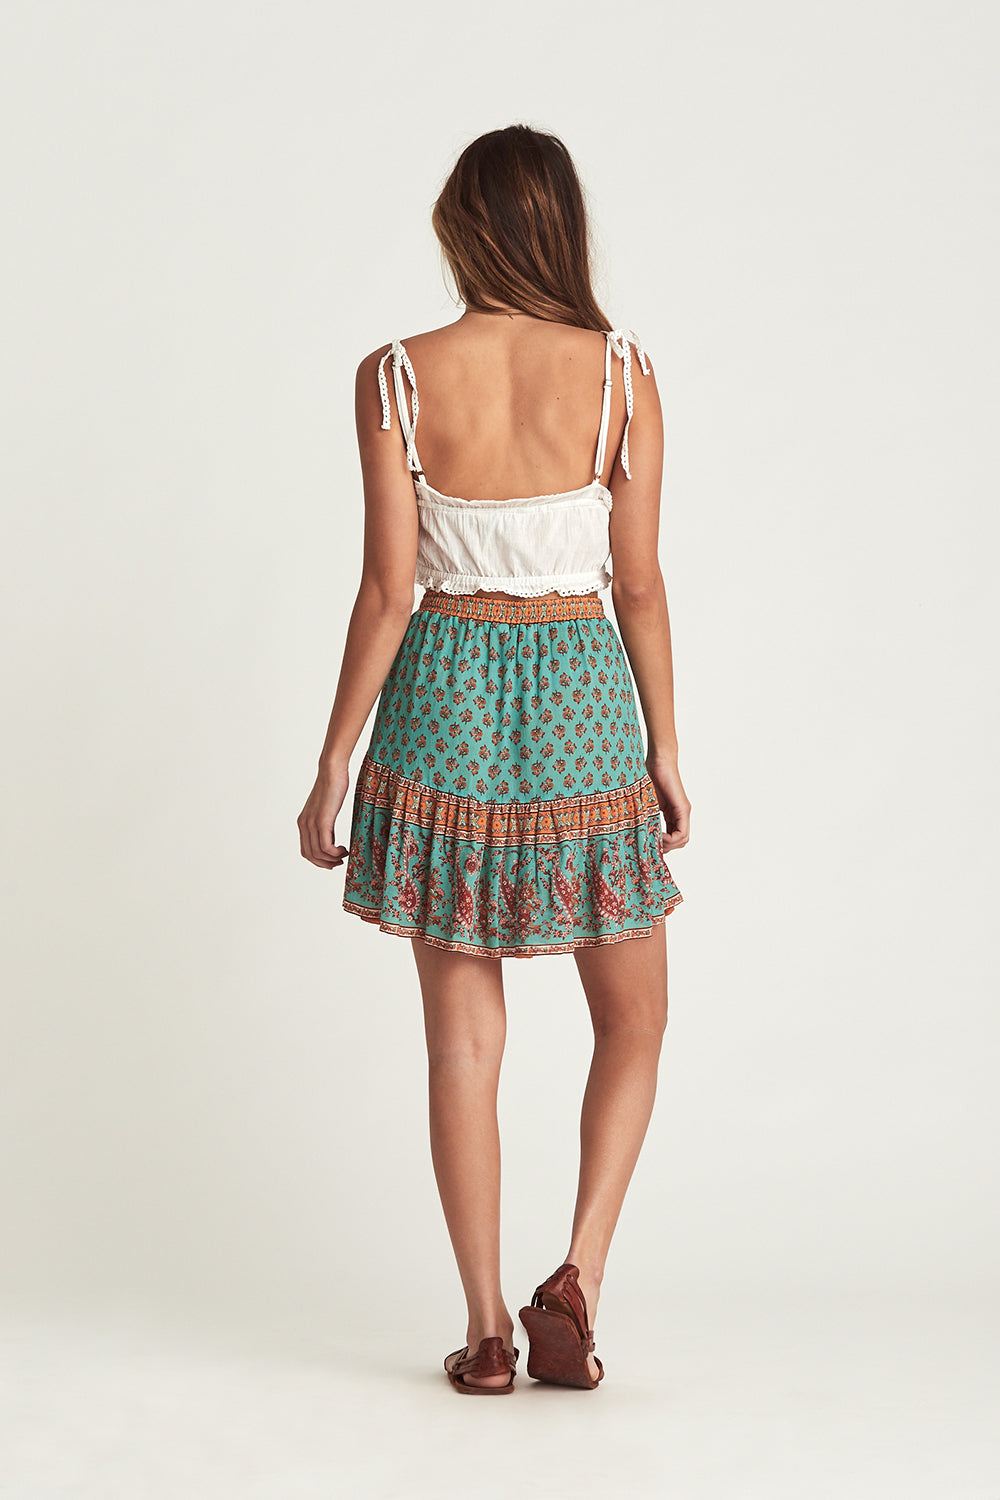 Serafina Mini Skirt in Kingfisher